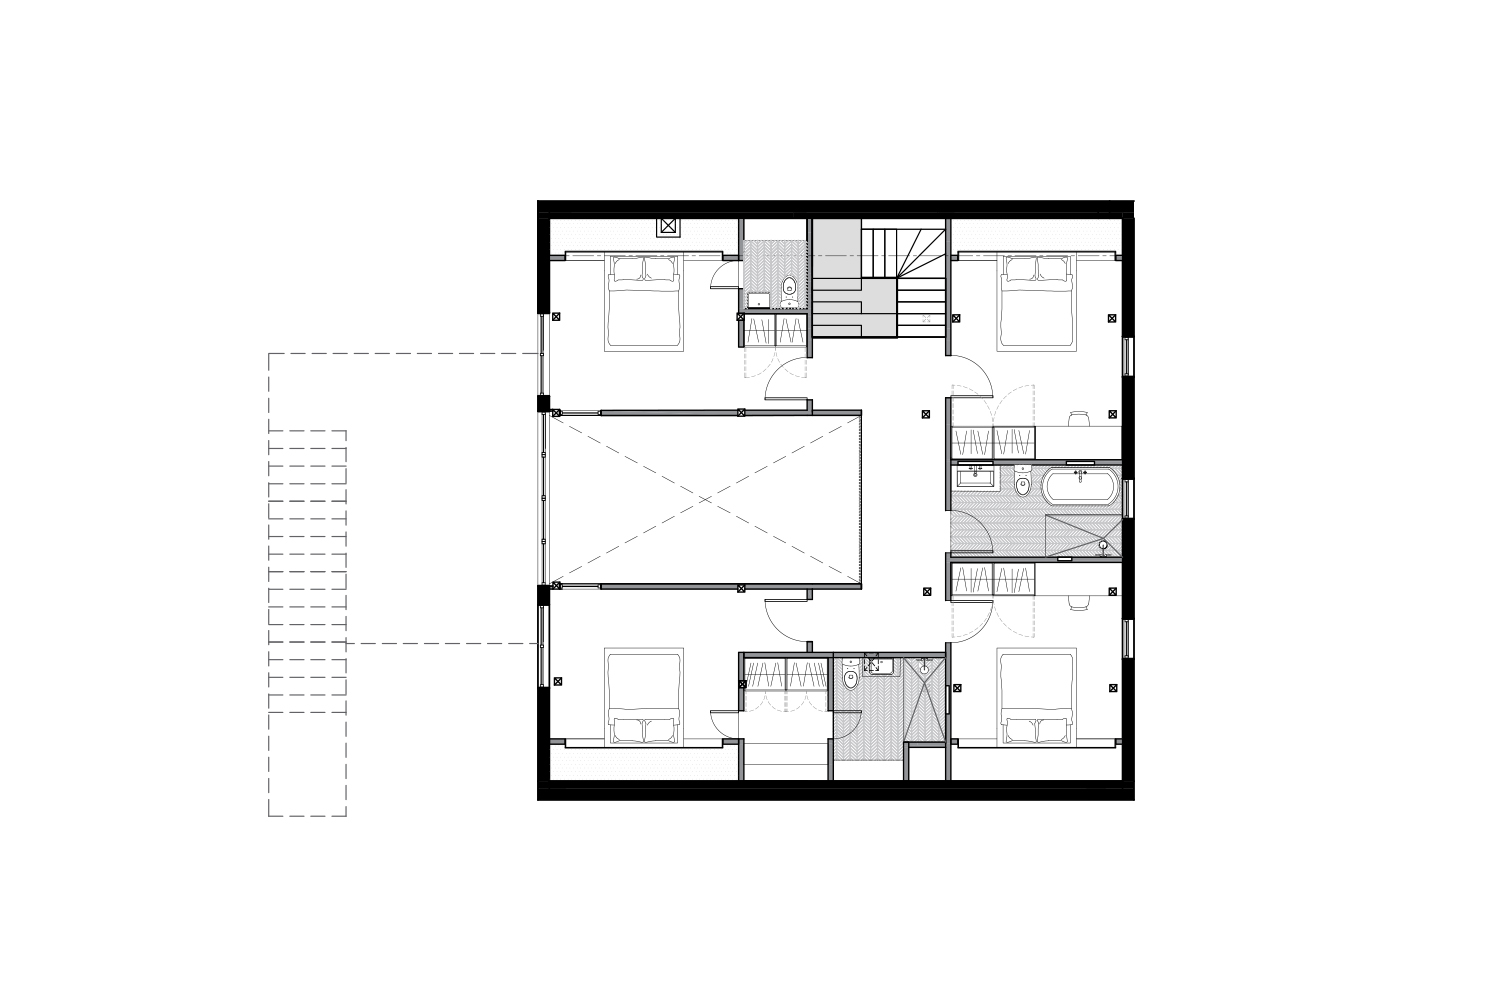 Layout plan for the cottage floor